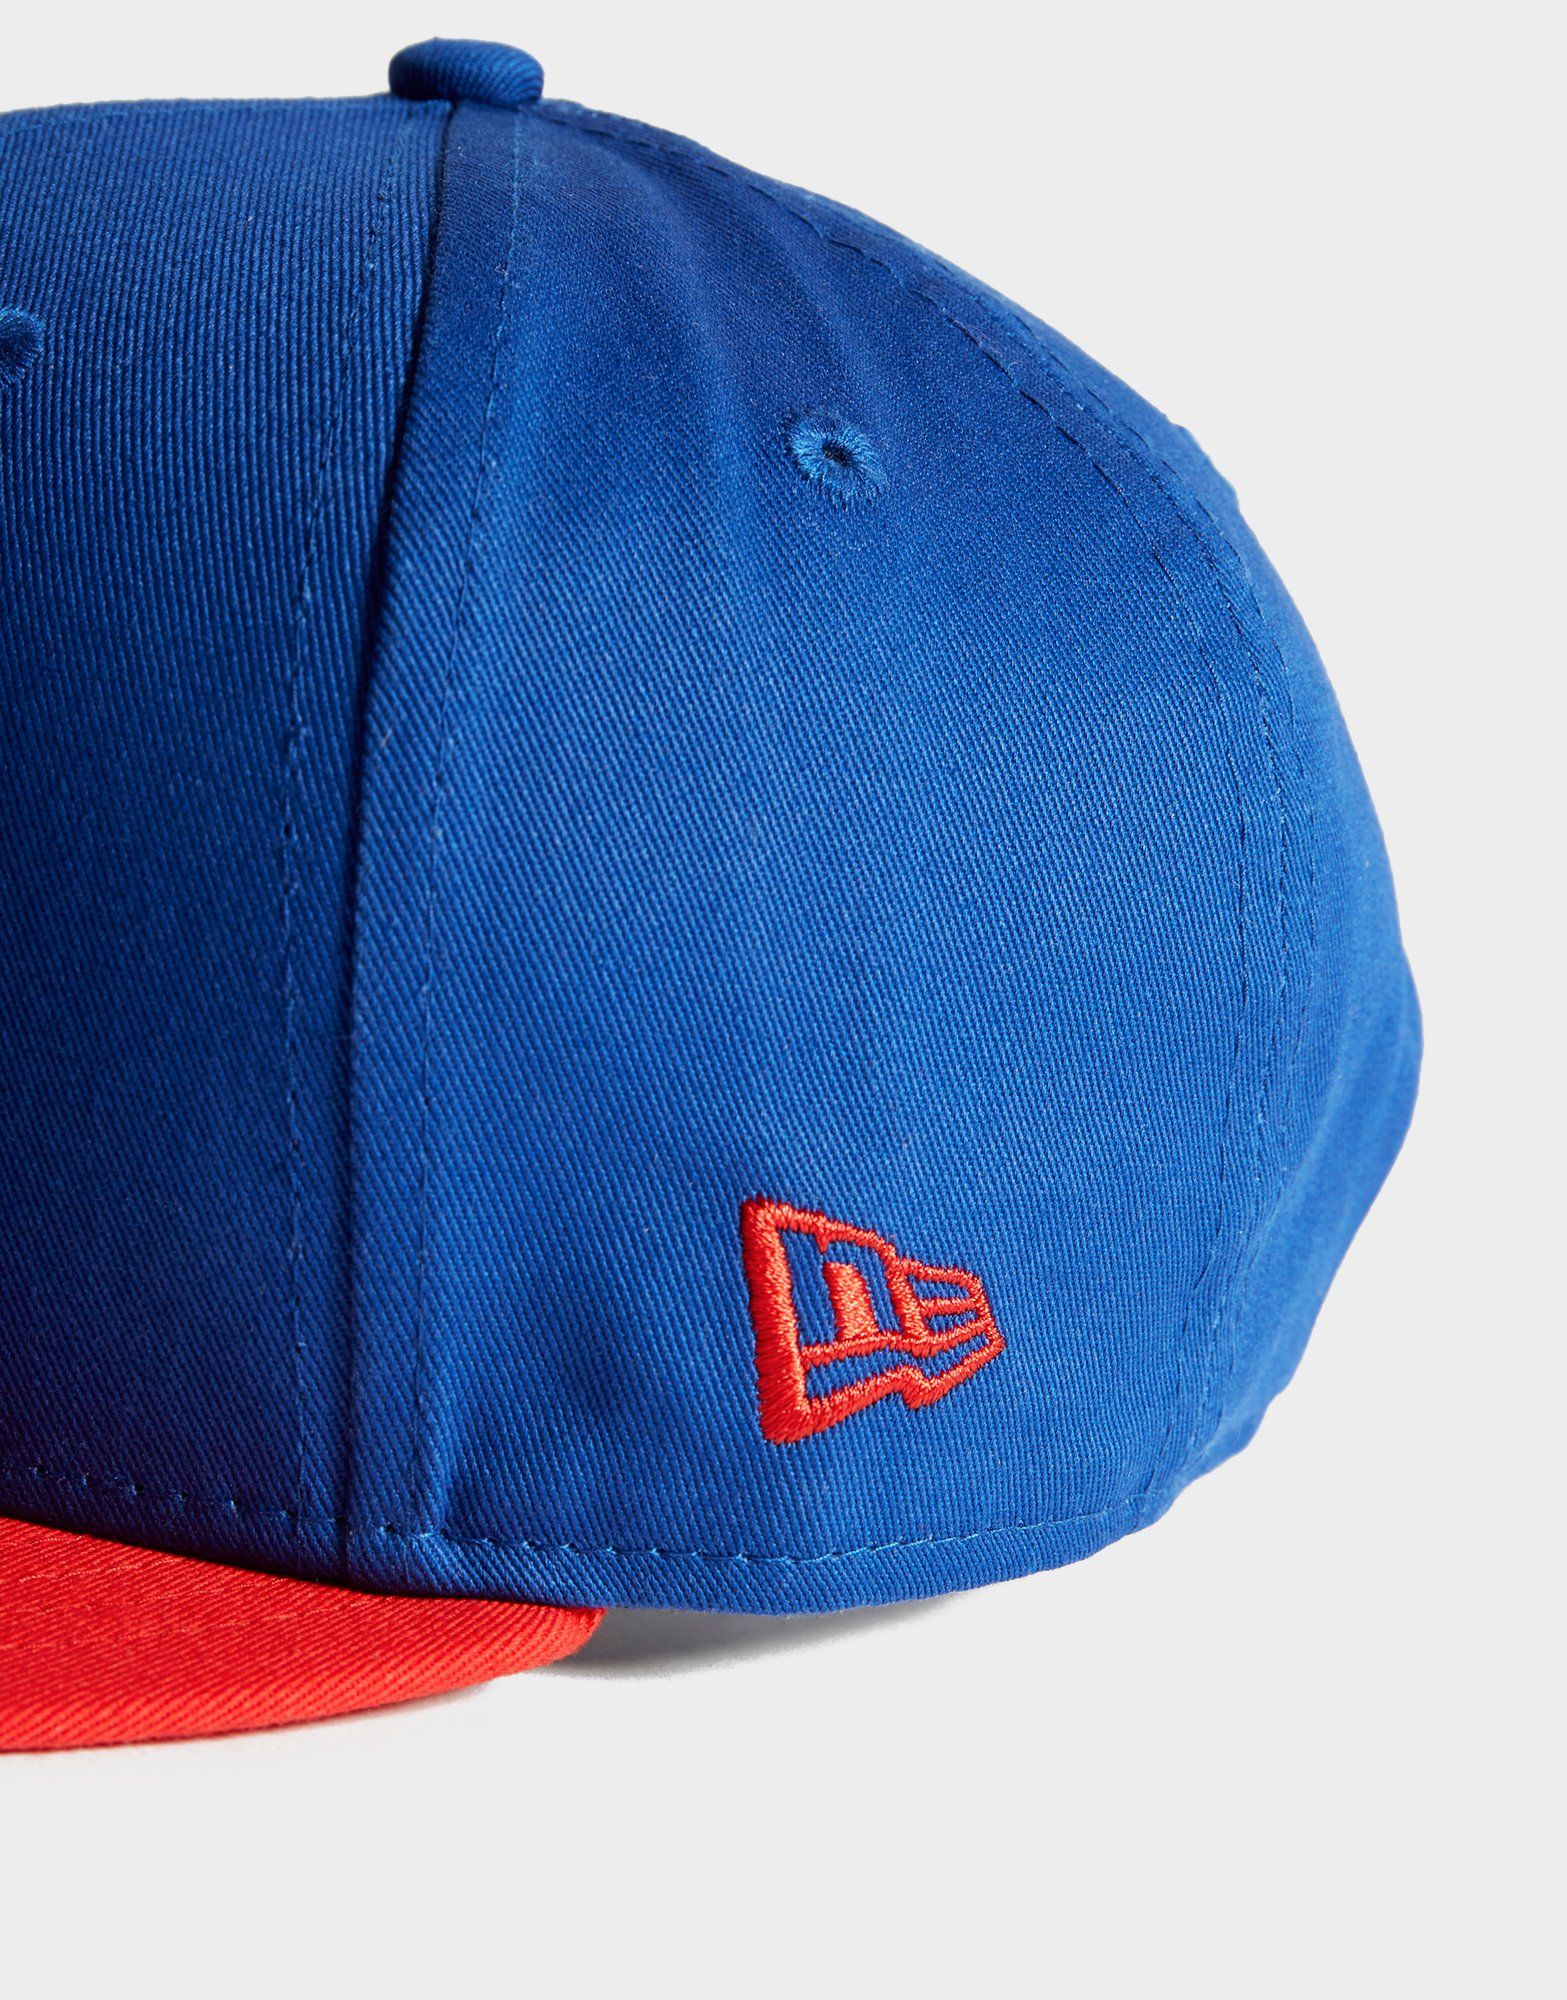 New Era Casquette NFL New York Giants 9FIFTY